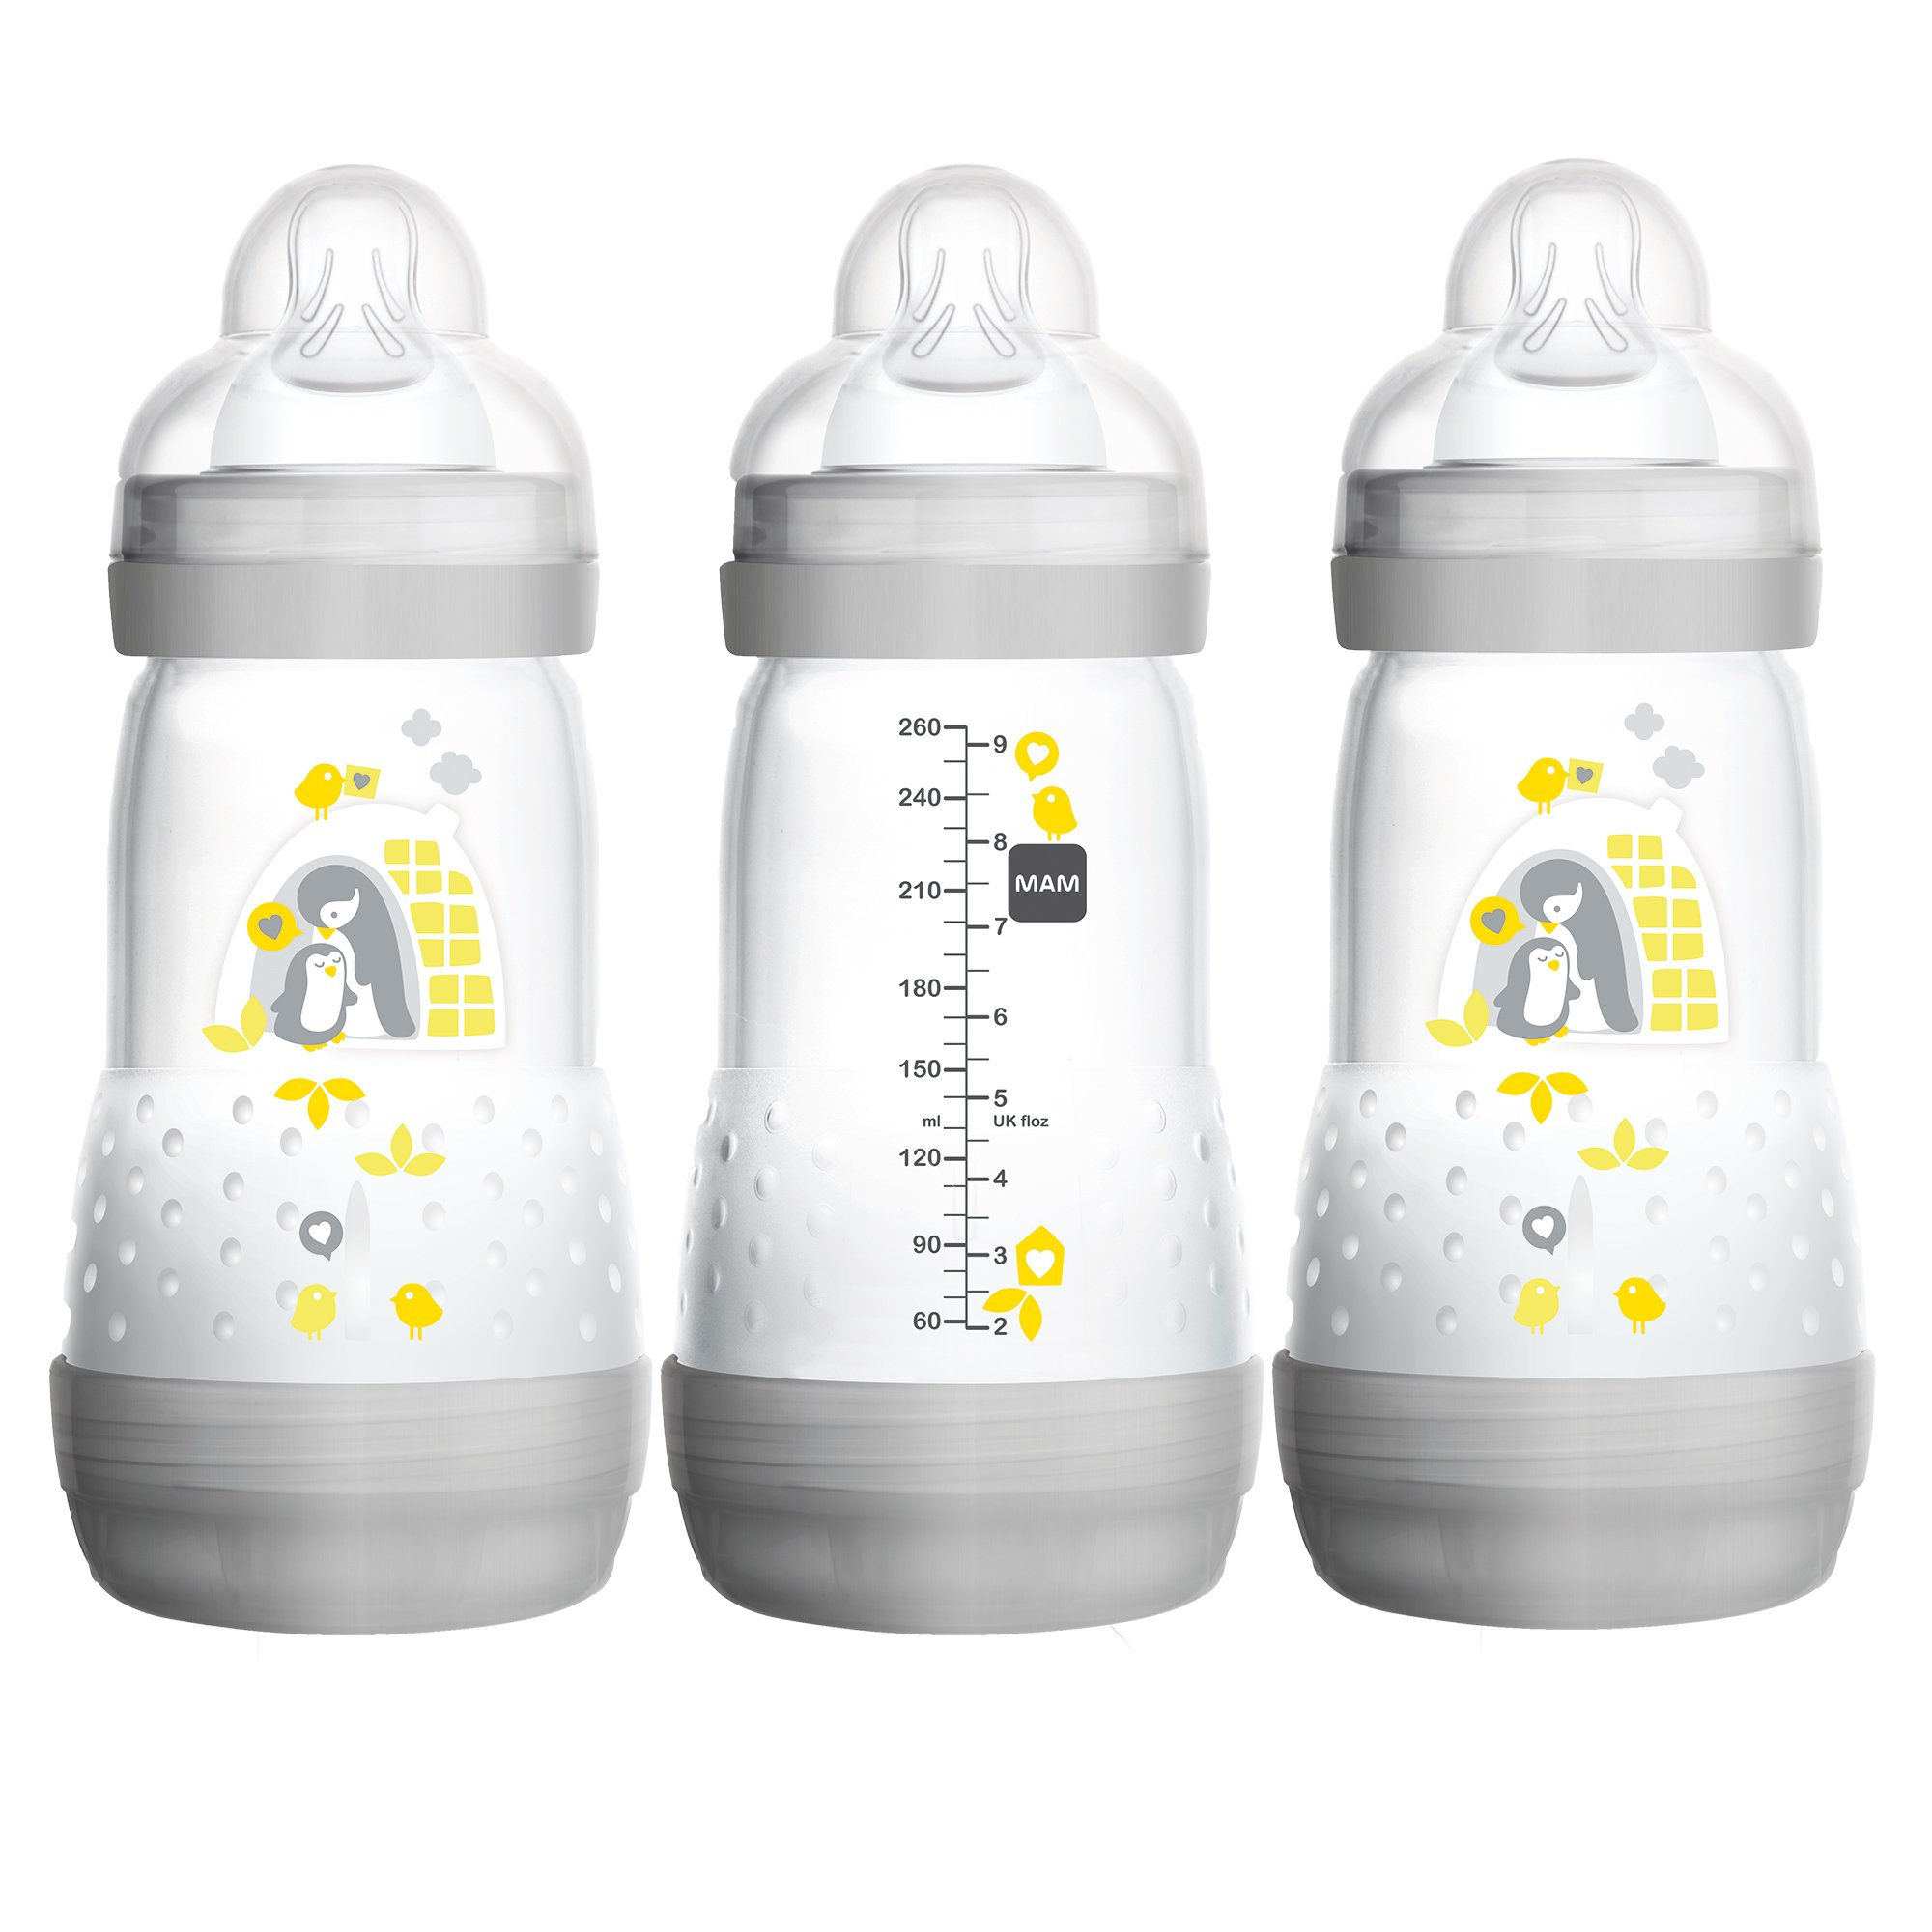 MAM Baby Bottles for Breastfed Babies, MAM Bottles Anti Colic, Gray, ''Time for Love'' Designs, 9 Ounces, 3-Count by MAM